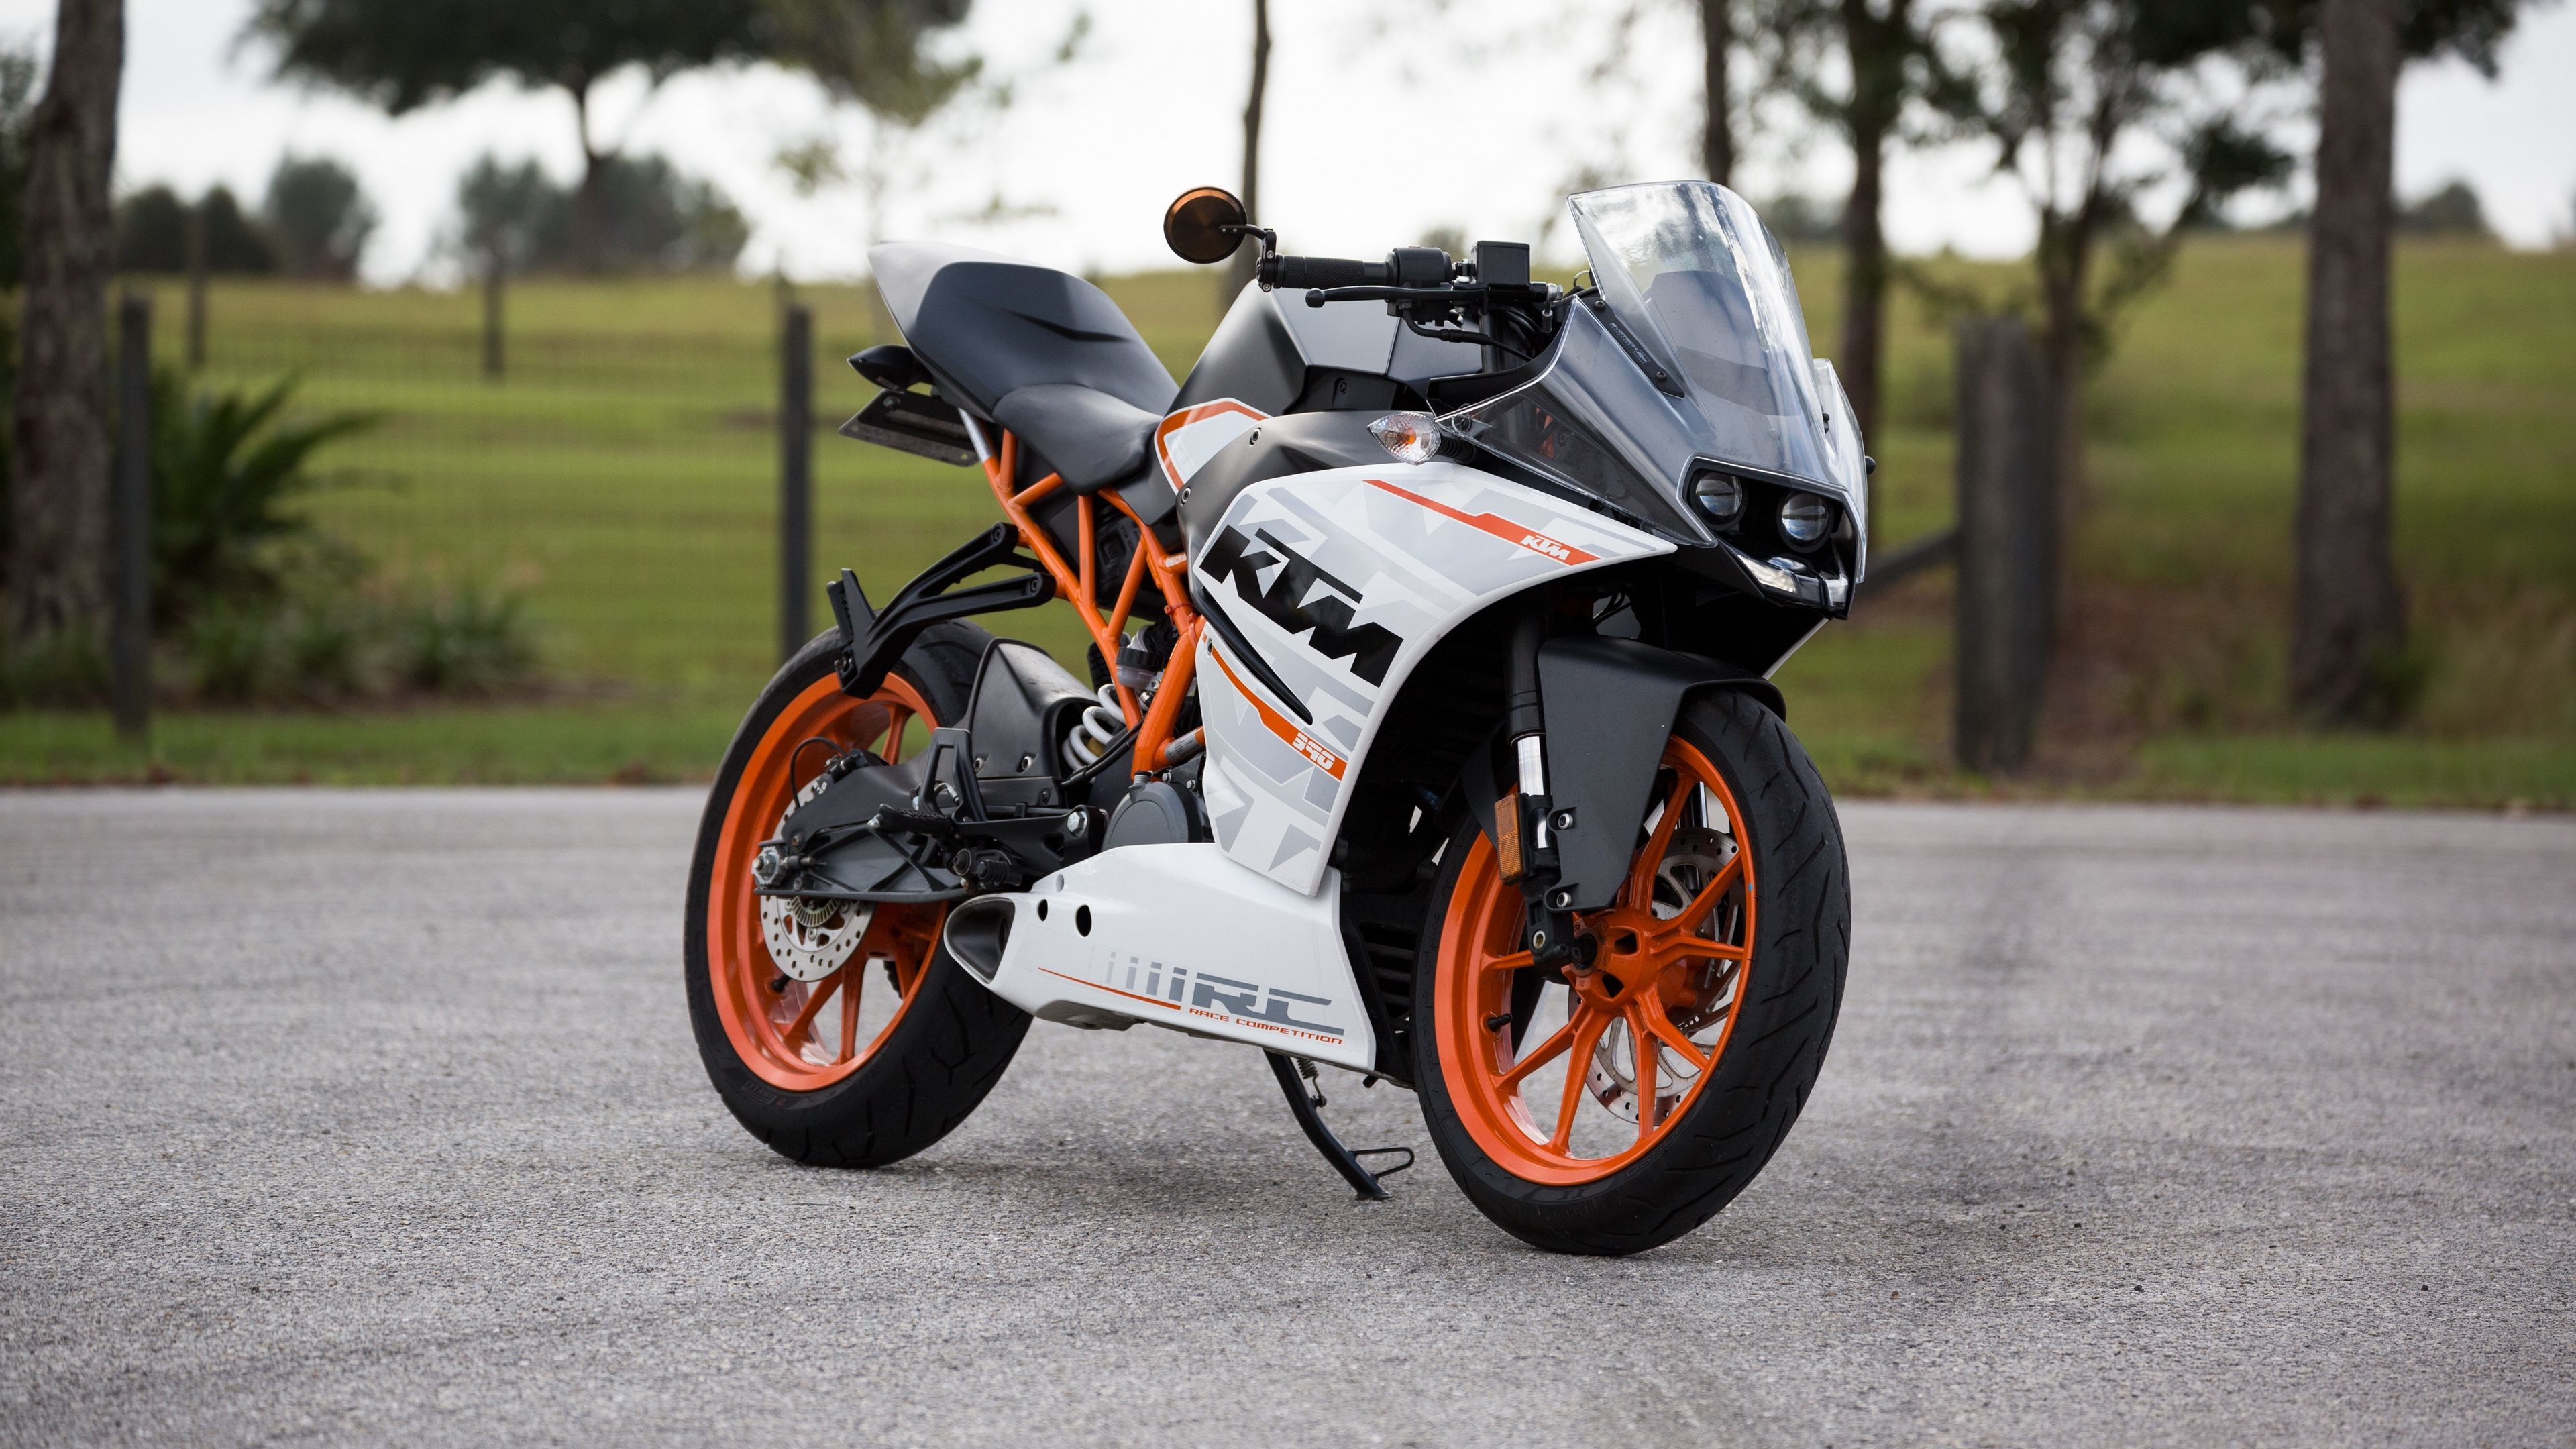 Ktm Motorcycle Side View 4k 4k Hd Wallpapers Ktm Rc Ktm Hd Motorcycles